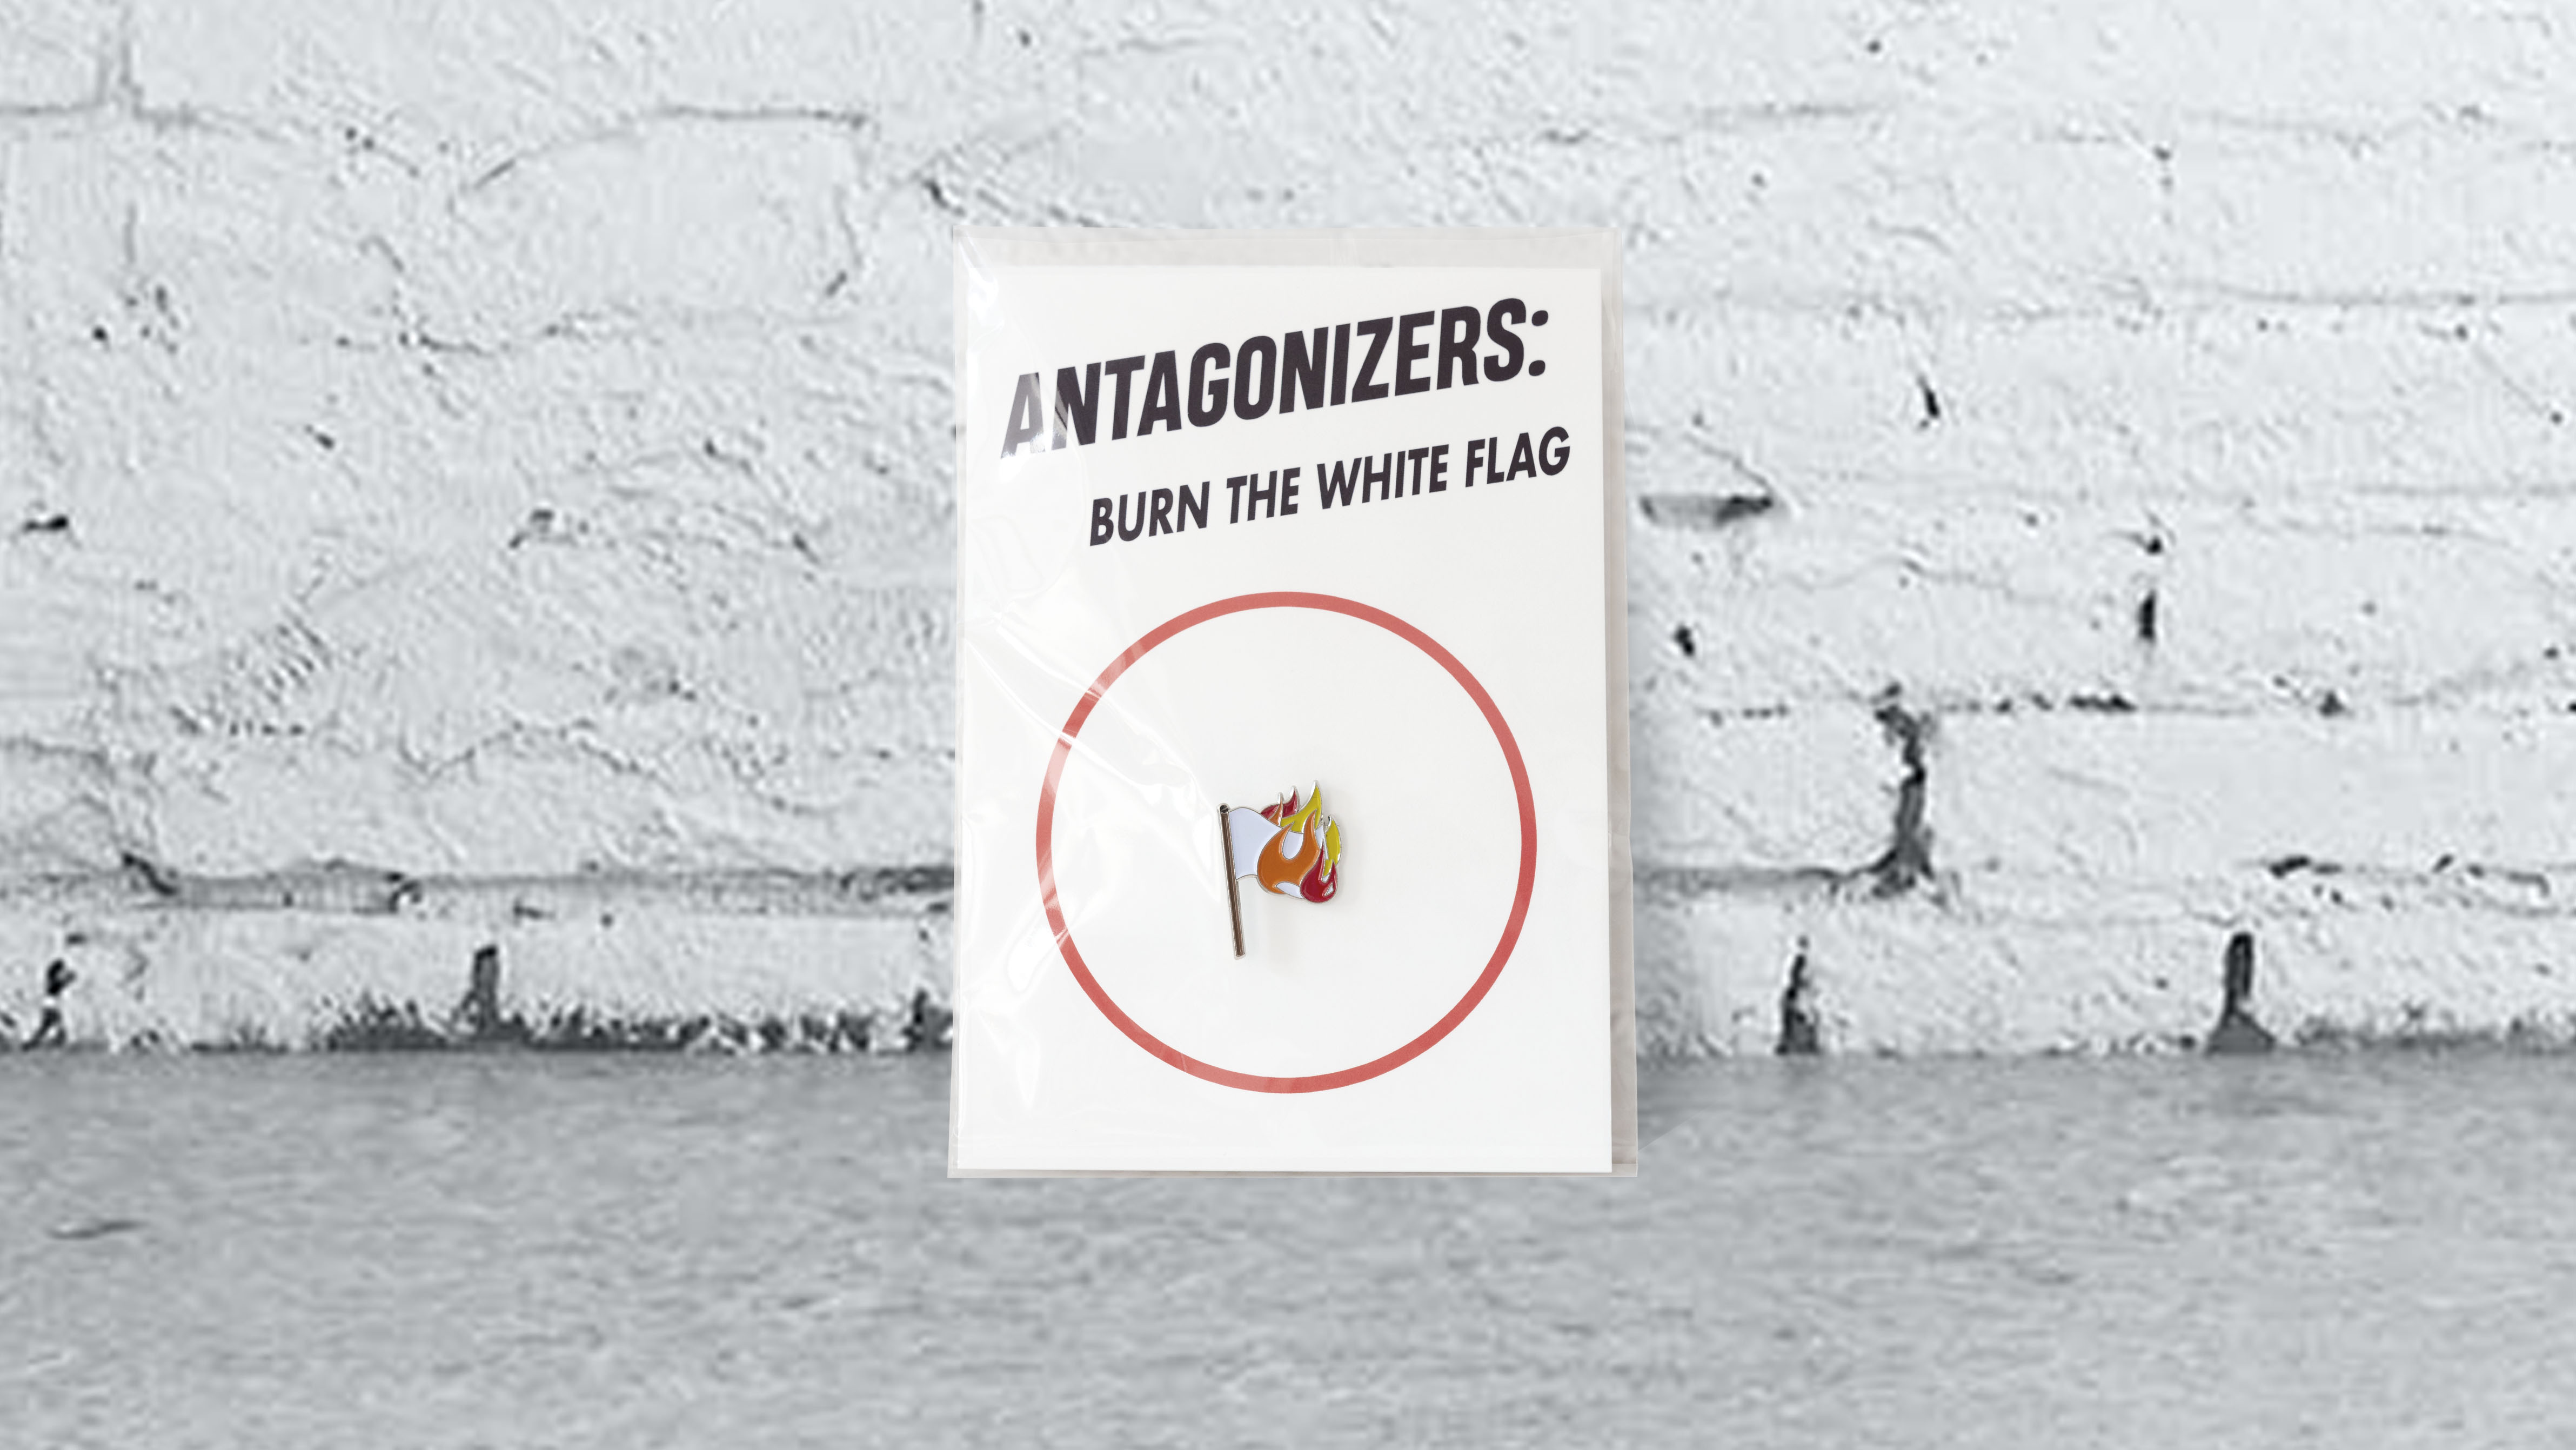 Antagonizers: Burn the White Flag